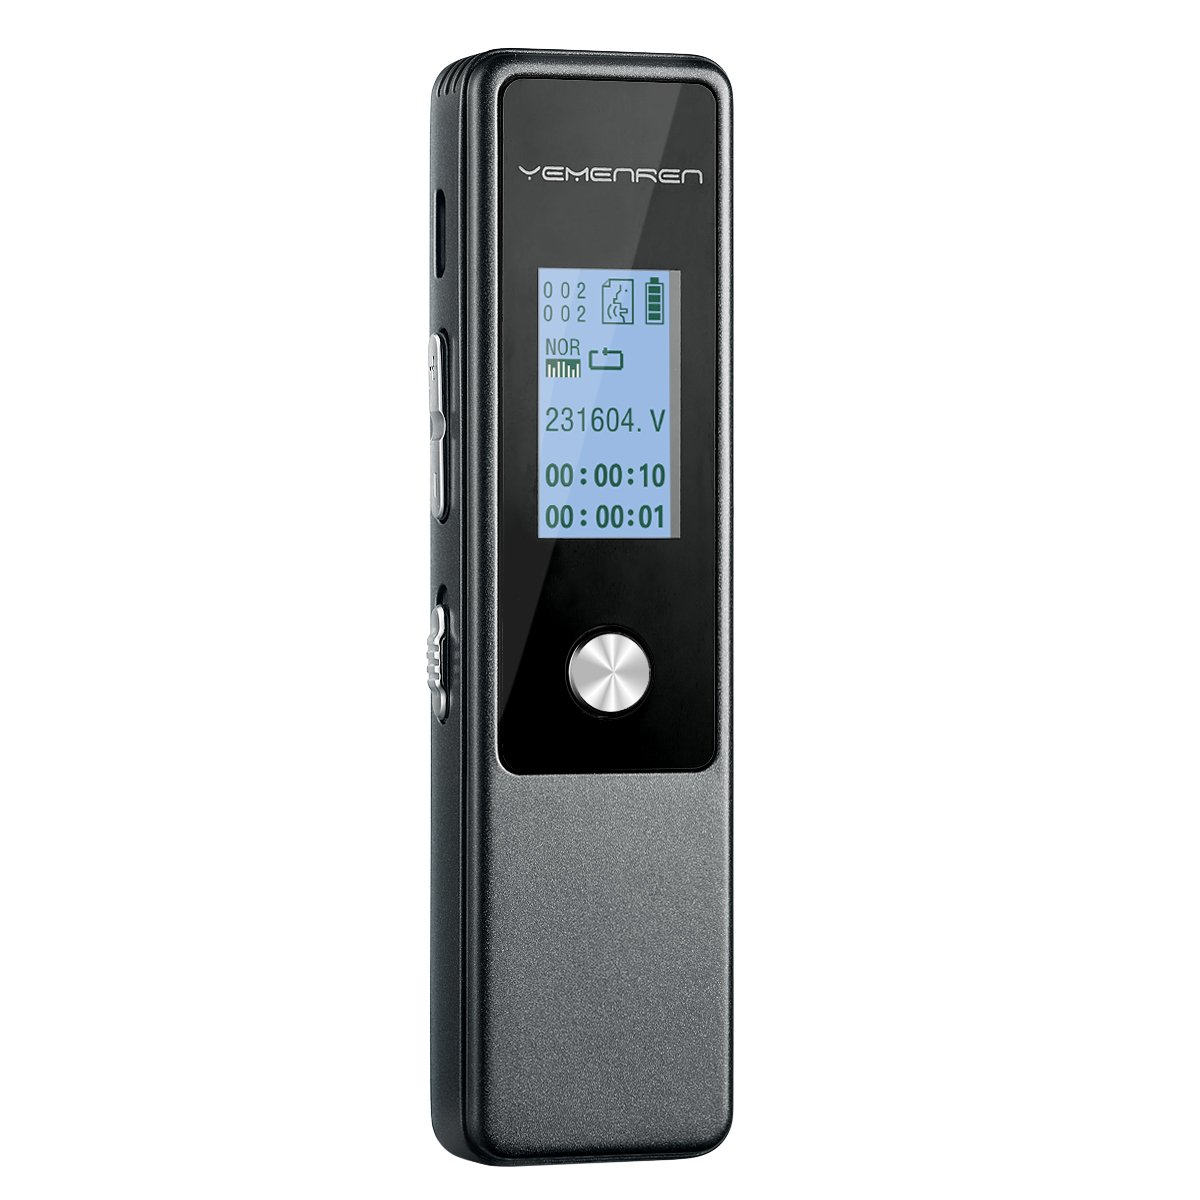 Digital Voice Recorder by Yemenren, 8GB 3072Kbps Sound Audio Recorder Dictaphone, Double Microphone, Metal Casing, Voice Activated